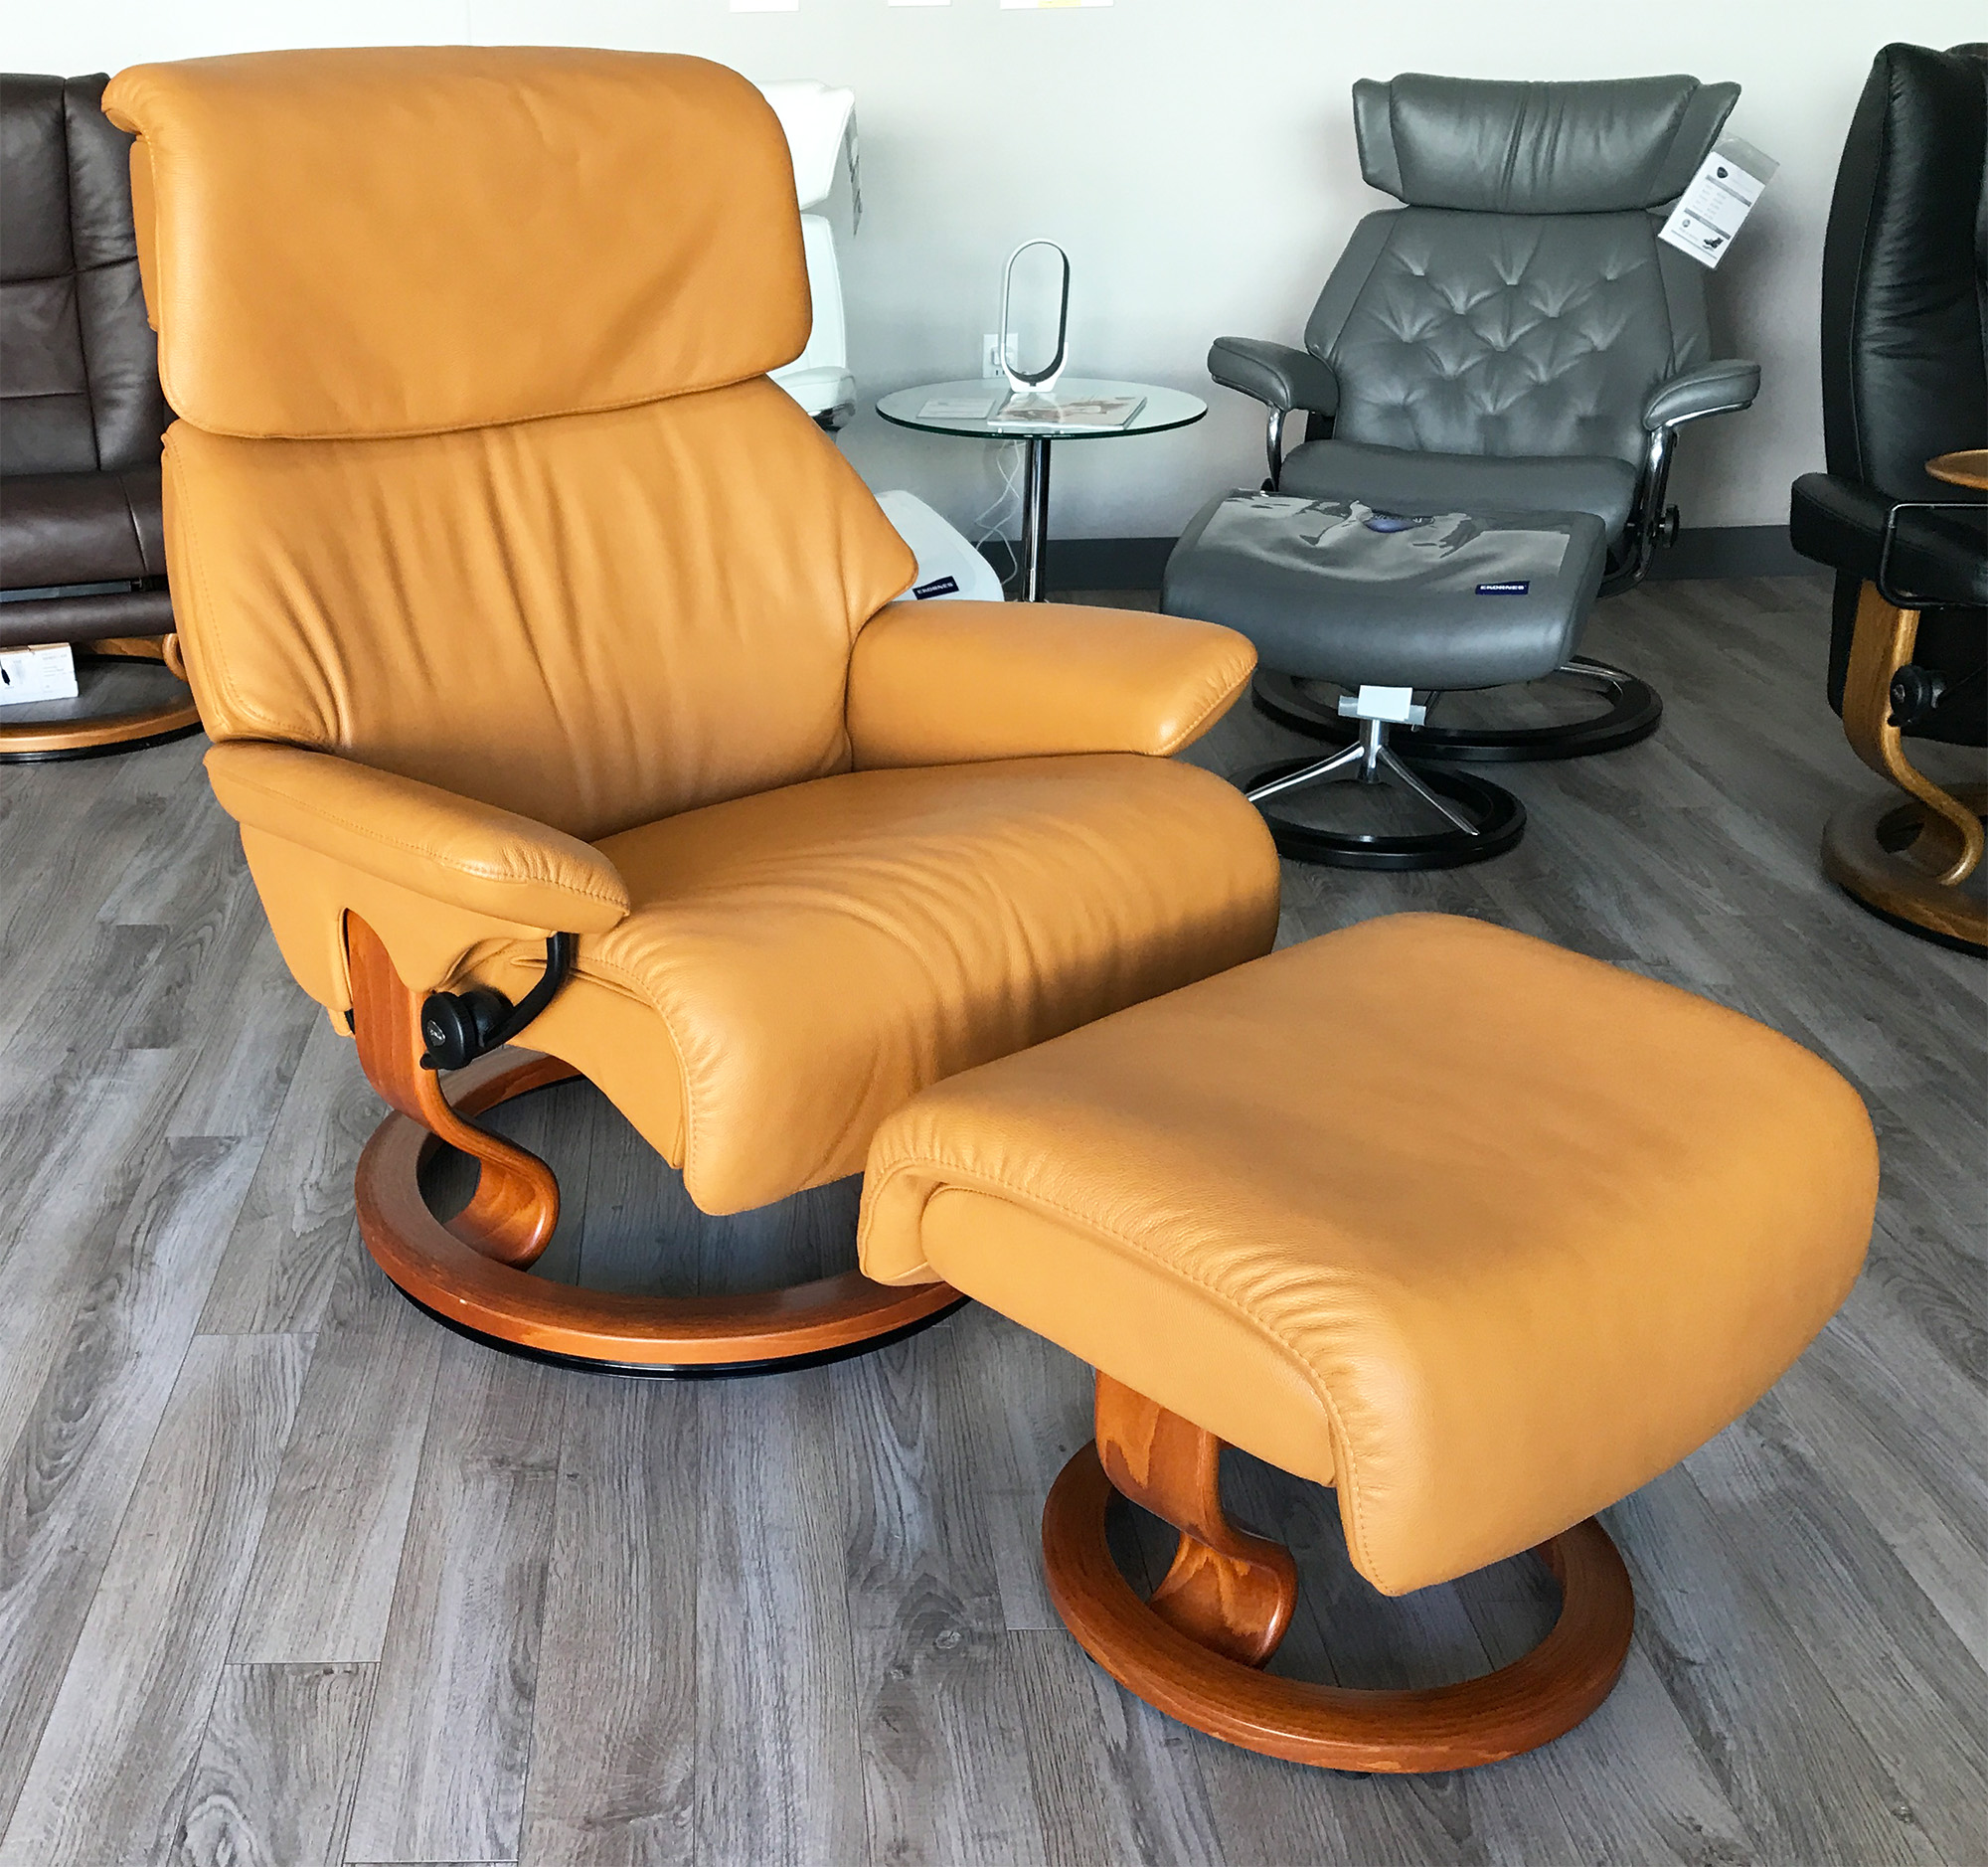 Leather Recliner Chair With Ottoman Leather Recliner And Ottoman